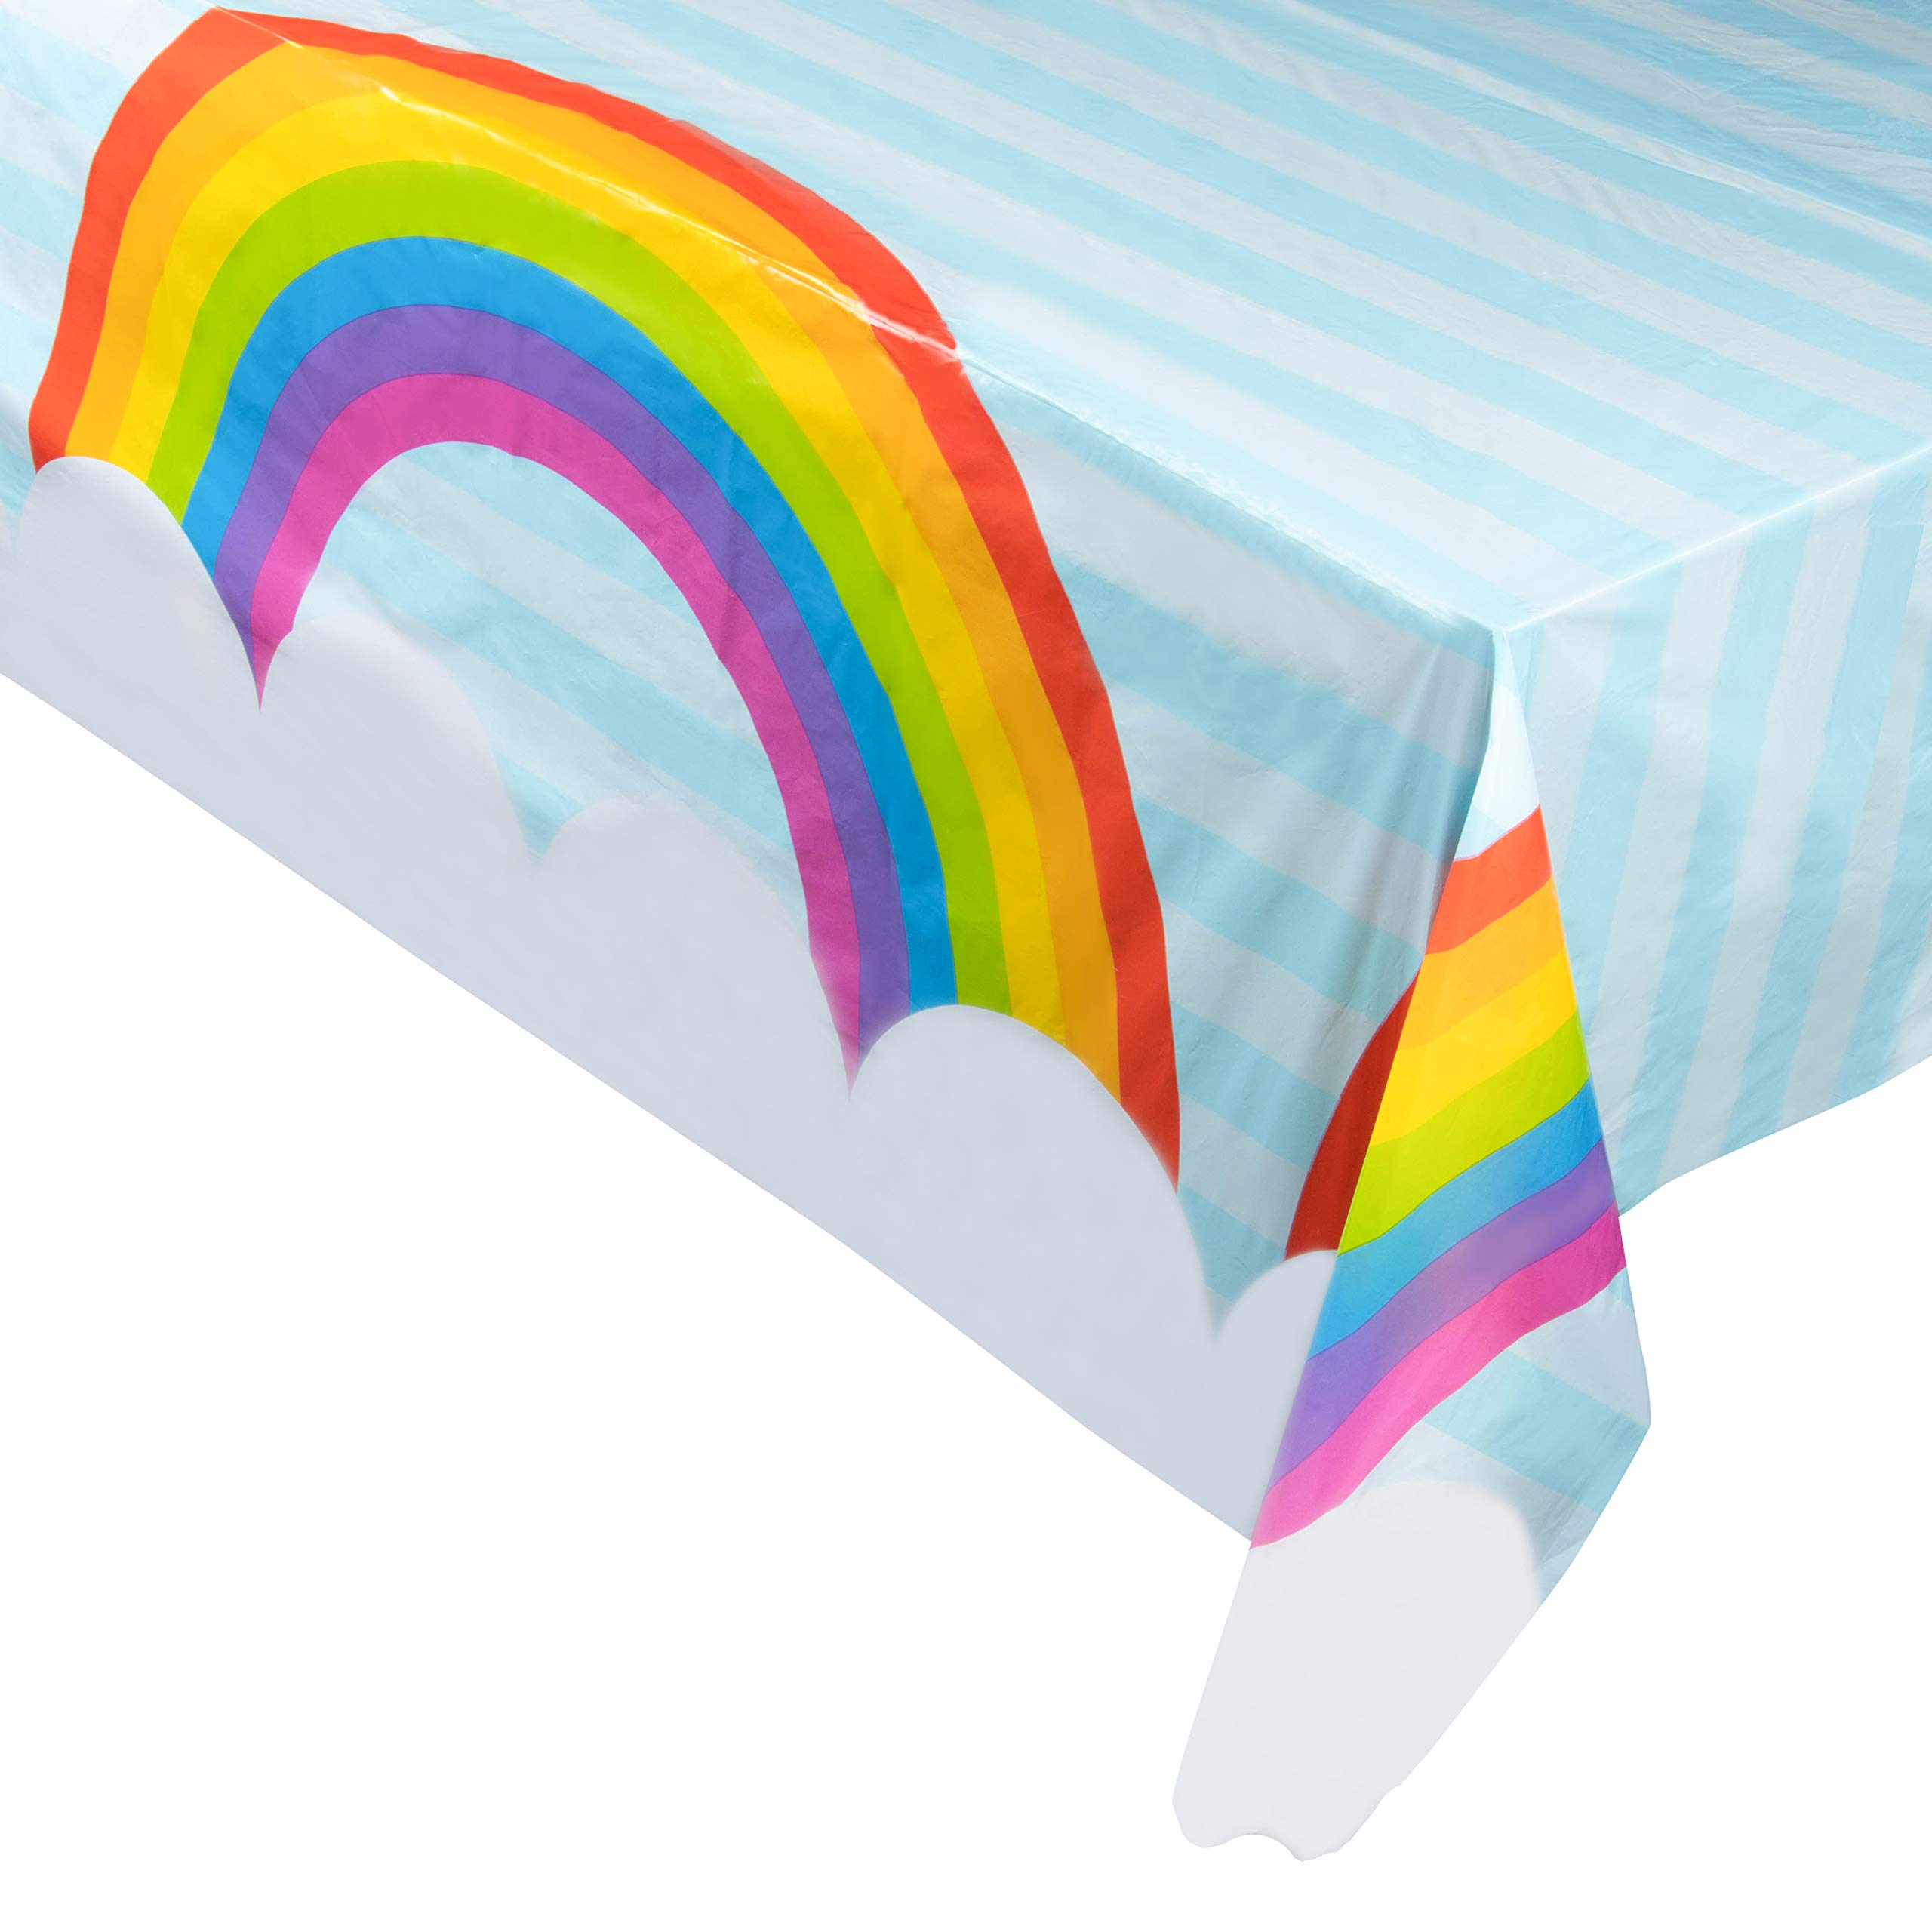 Juvale 3-Pack Rainbow Plastic Tablecloth - Rectangle 54 x 108 Inch Disposable Table Cover, Fits Up to 8-Foot Long Tables, Unicorn, Fantasy Themed Decorations, Rainbow Party Supplies, 4.5 x 9 Feet